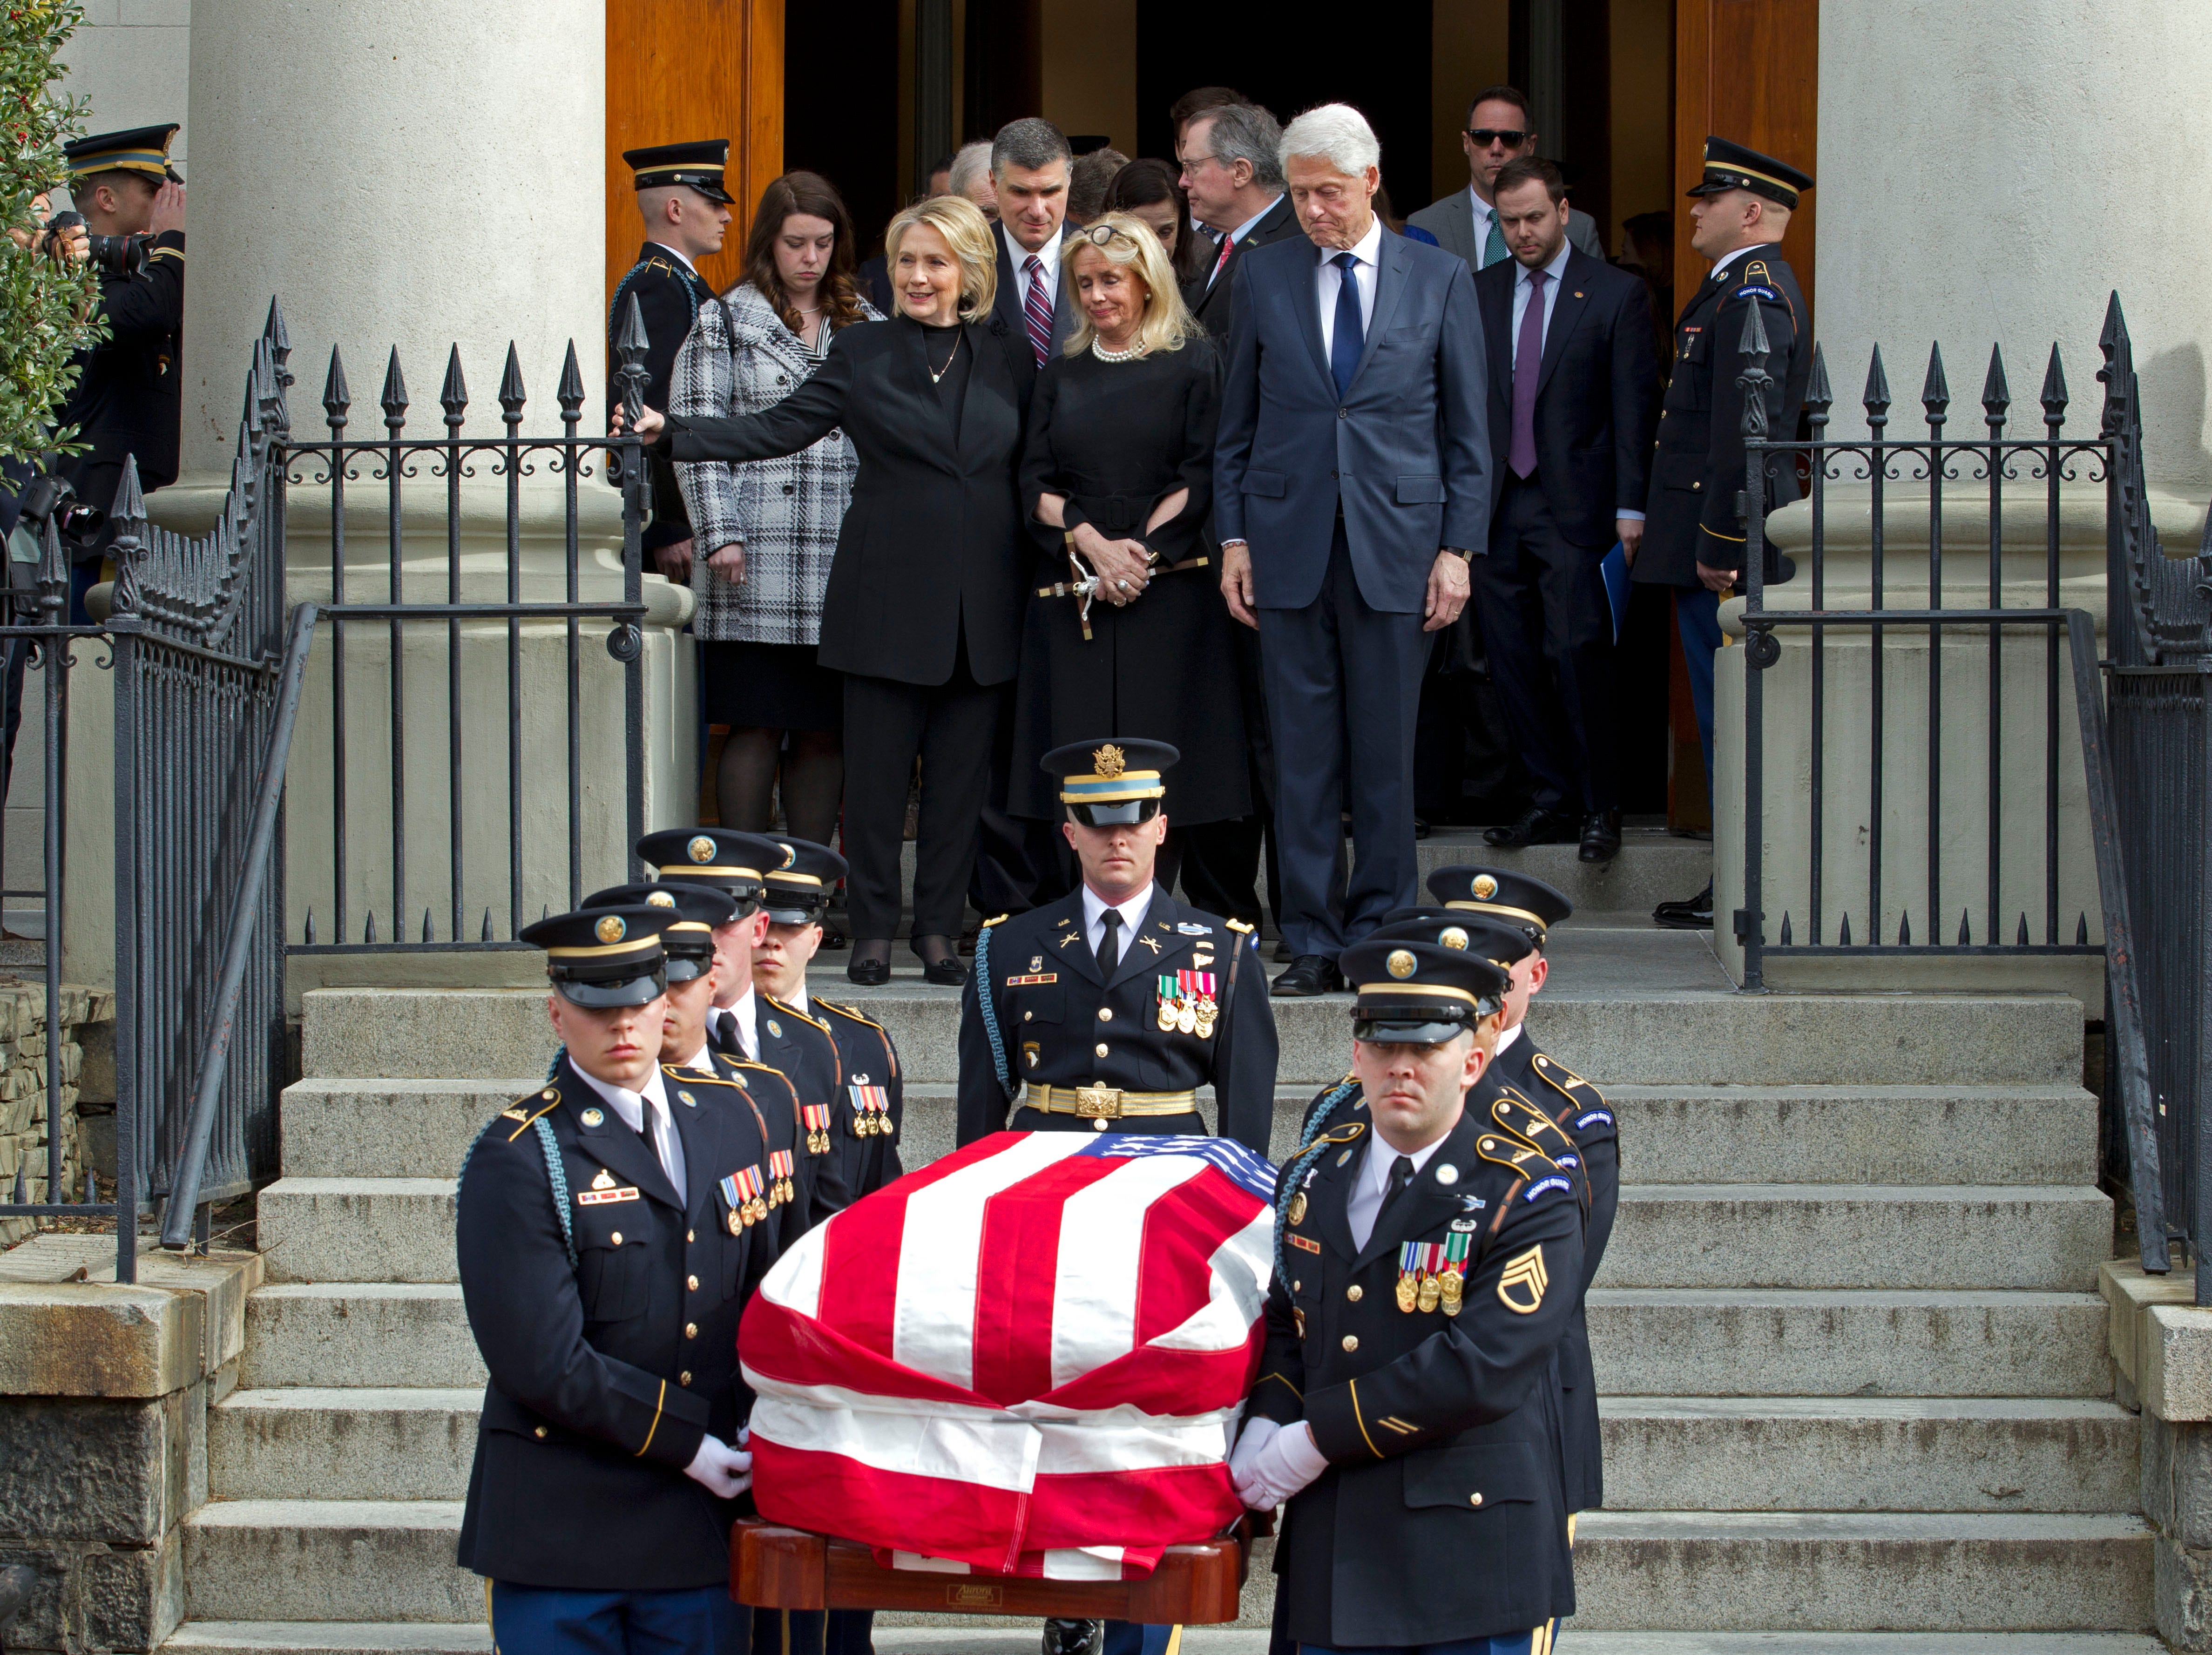 Rep. Debbie Dingell, D-Dearborn, center, accompanied by former President Bill Clinton and former first lady Hillary Clinton, follows the flag-draped casket of former Rep. John Dingell after the funeral at Holy Trinity Catholic Church, Thursday, Feb. 14, 2019, in Washington. Dingell, the longest-serving member of Congress in American history who mastered legislative deal-making and was fiercely protective of Detroit's auto industry, died at age 92.